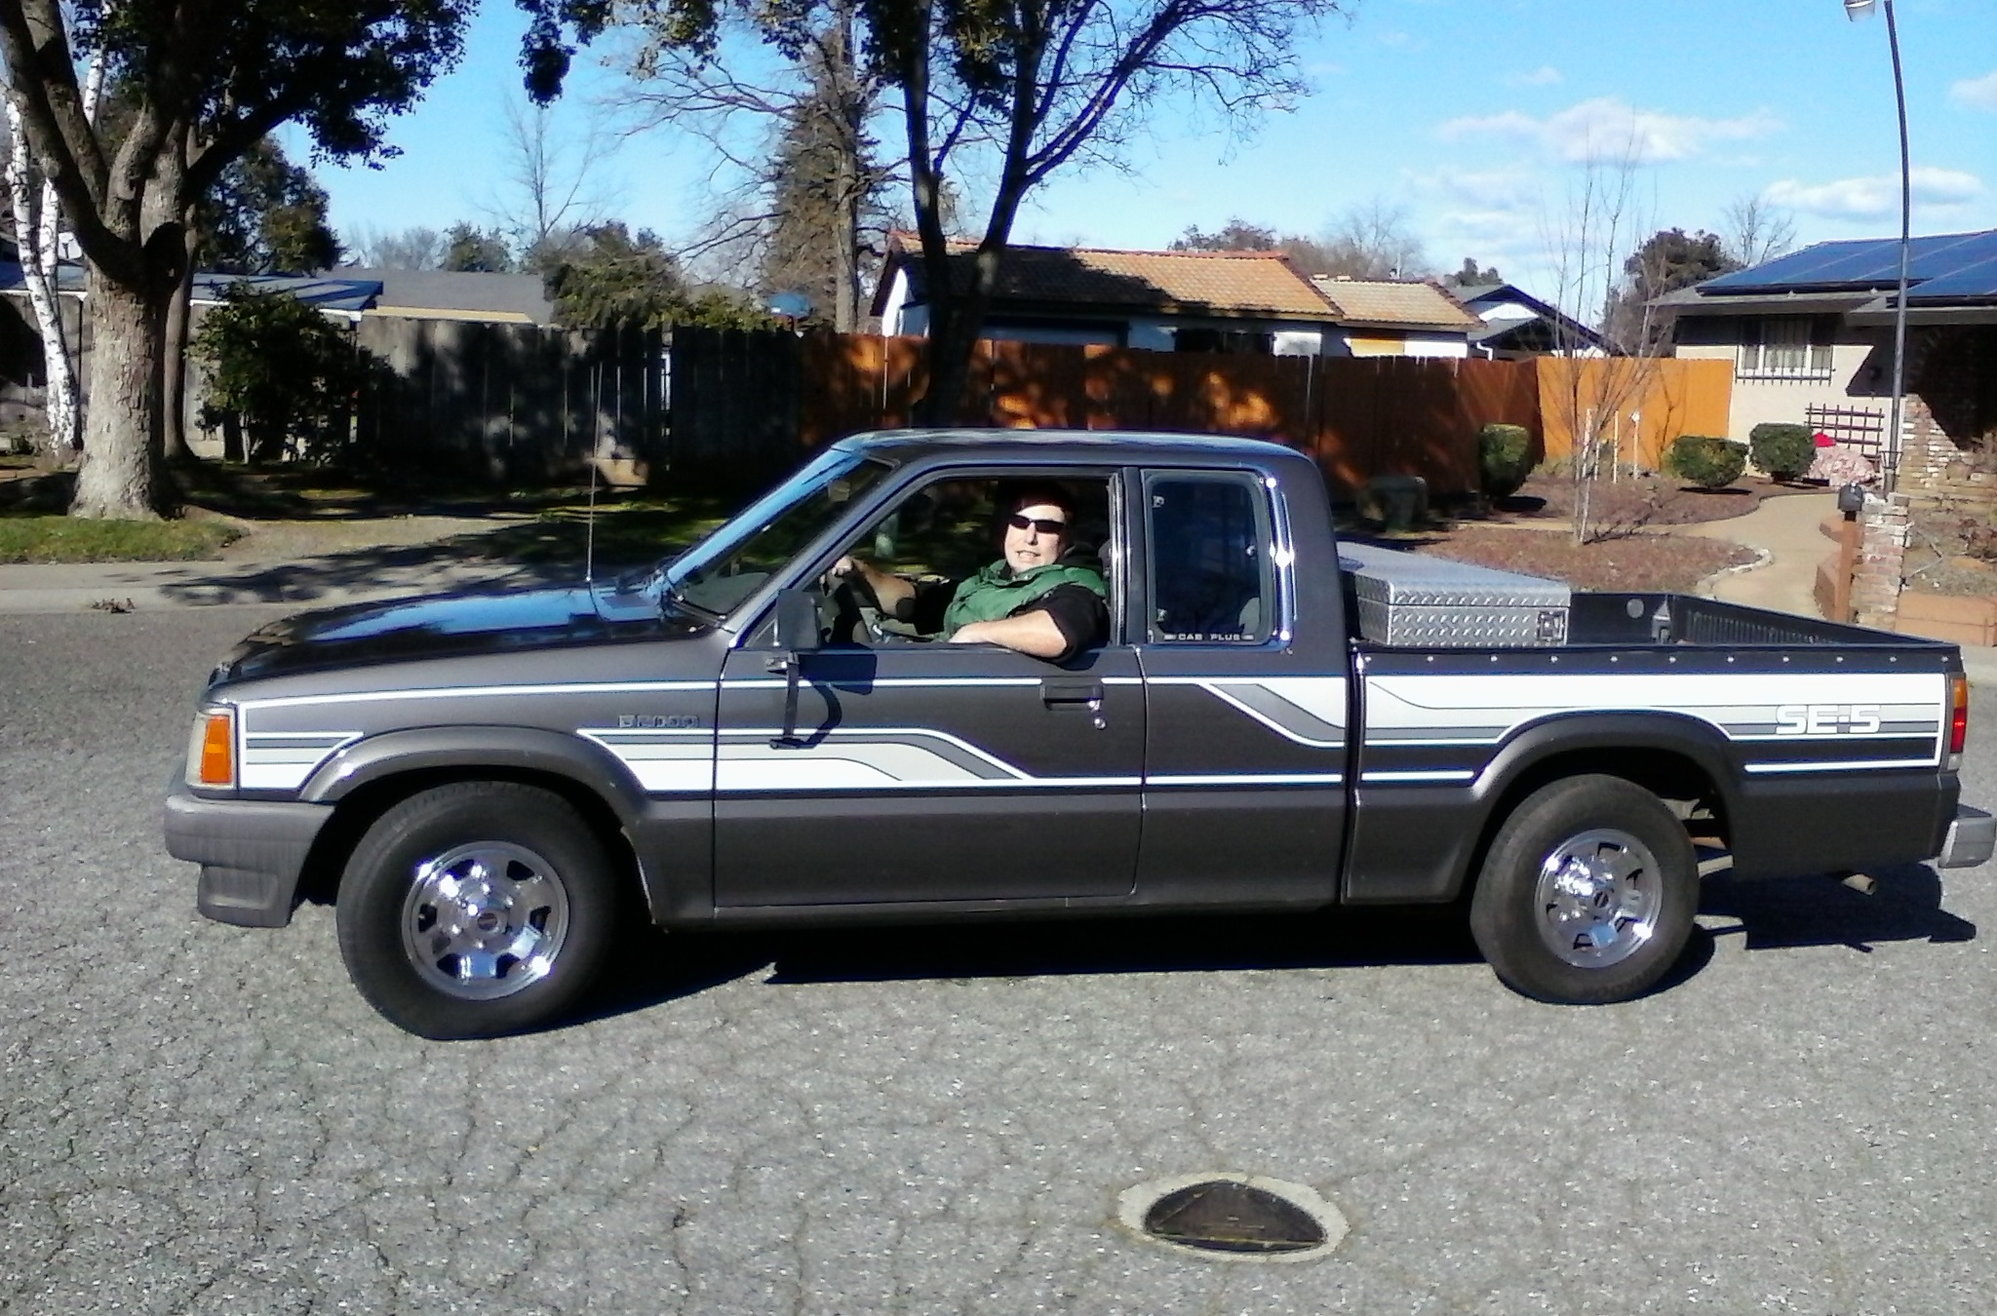 I Love My 86 Mazda B2000   - Mazda Forum